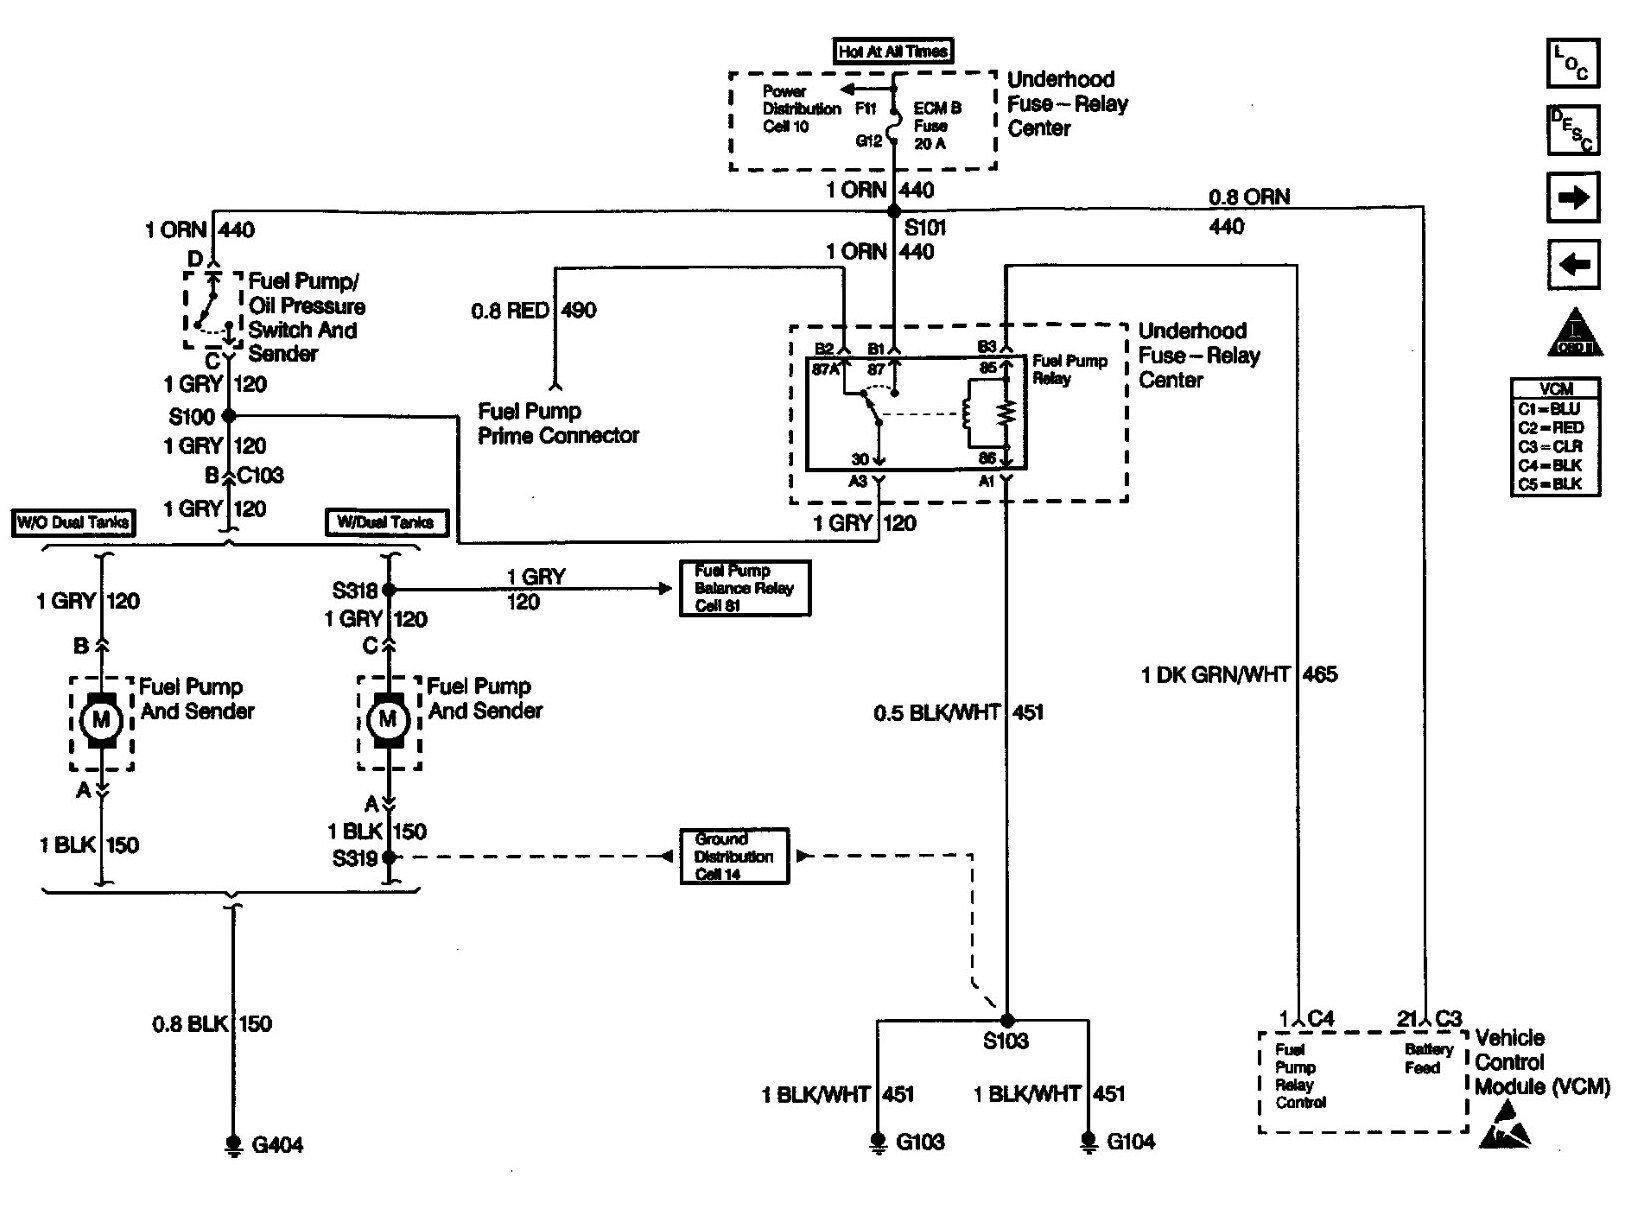 gmc fuel pump wiring diagram 14 7 fearless wonder de \u2022gmc fuel pump wiring wiring diagram rh golfbeter nl 2000 gmc sierra fuel pump wiring diagram 87 gmc fuel pump wiring diagram